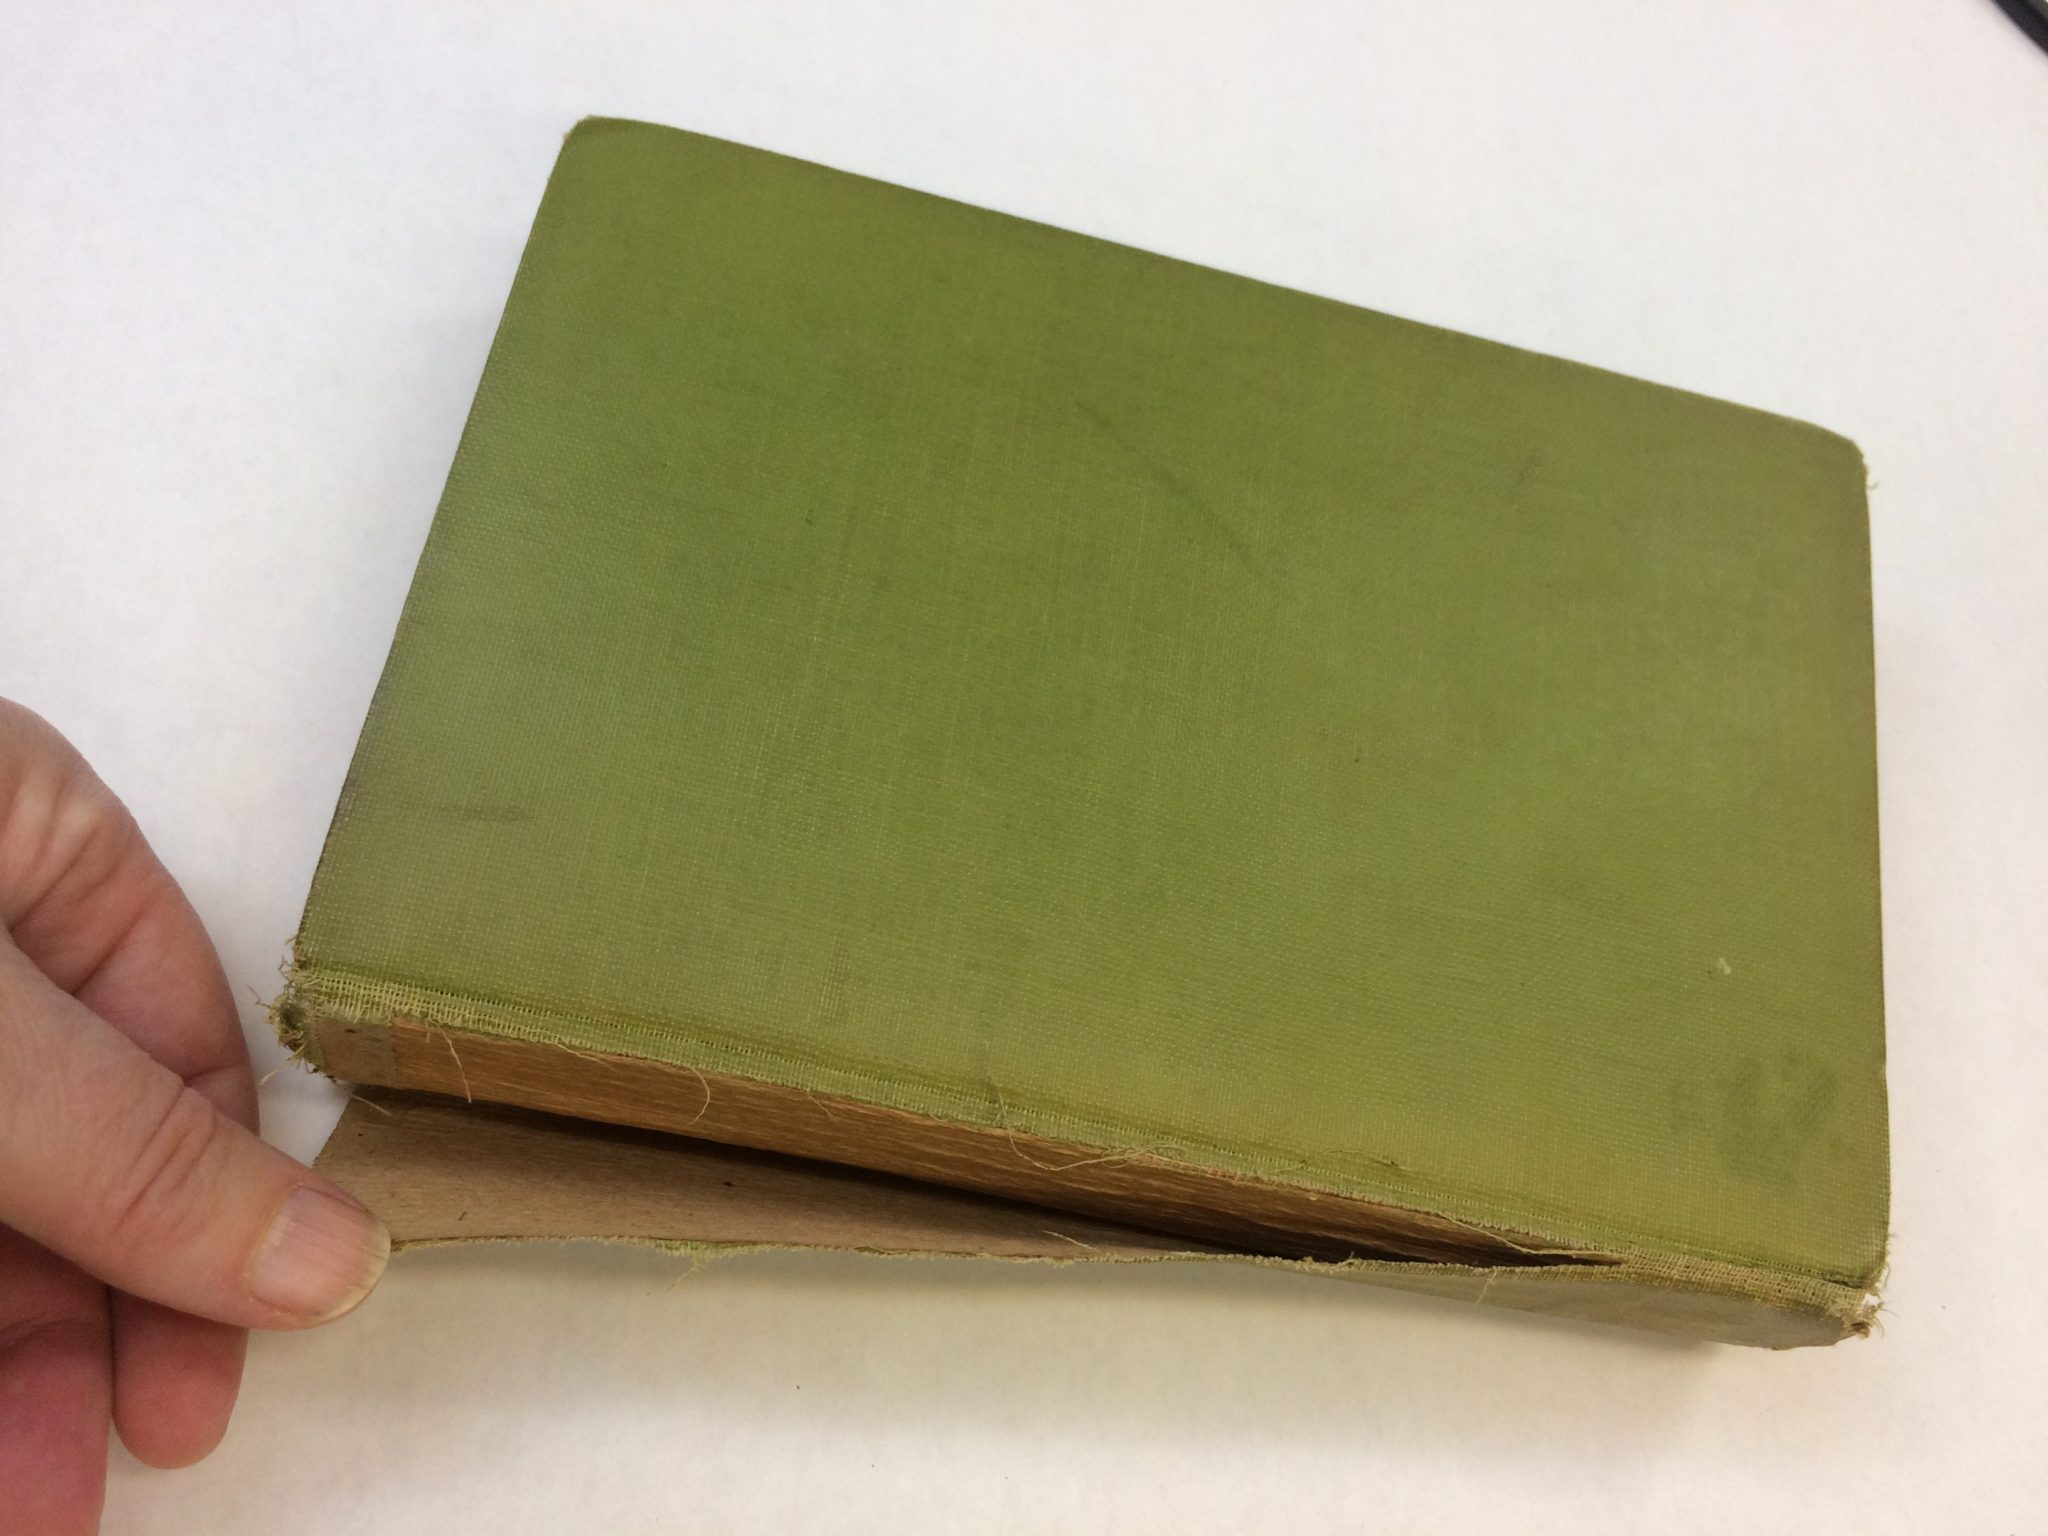 How to Reattach/ Preserve Loose Book Spines